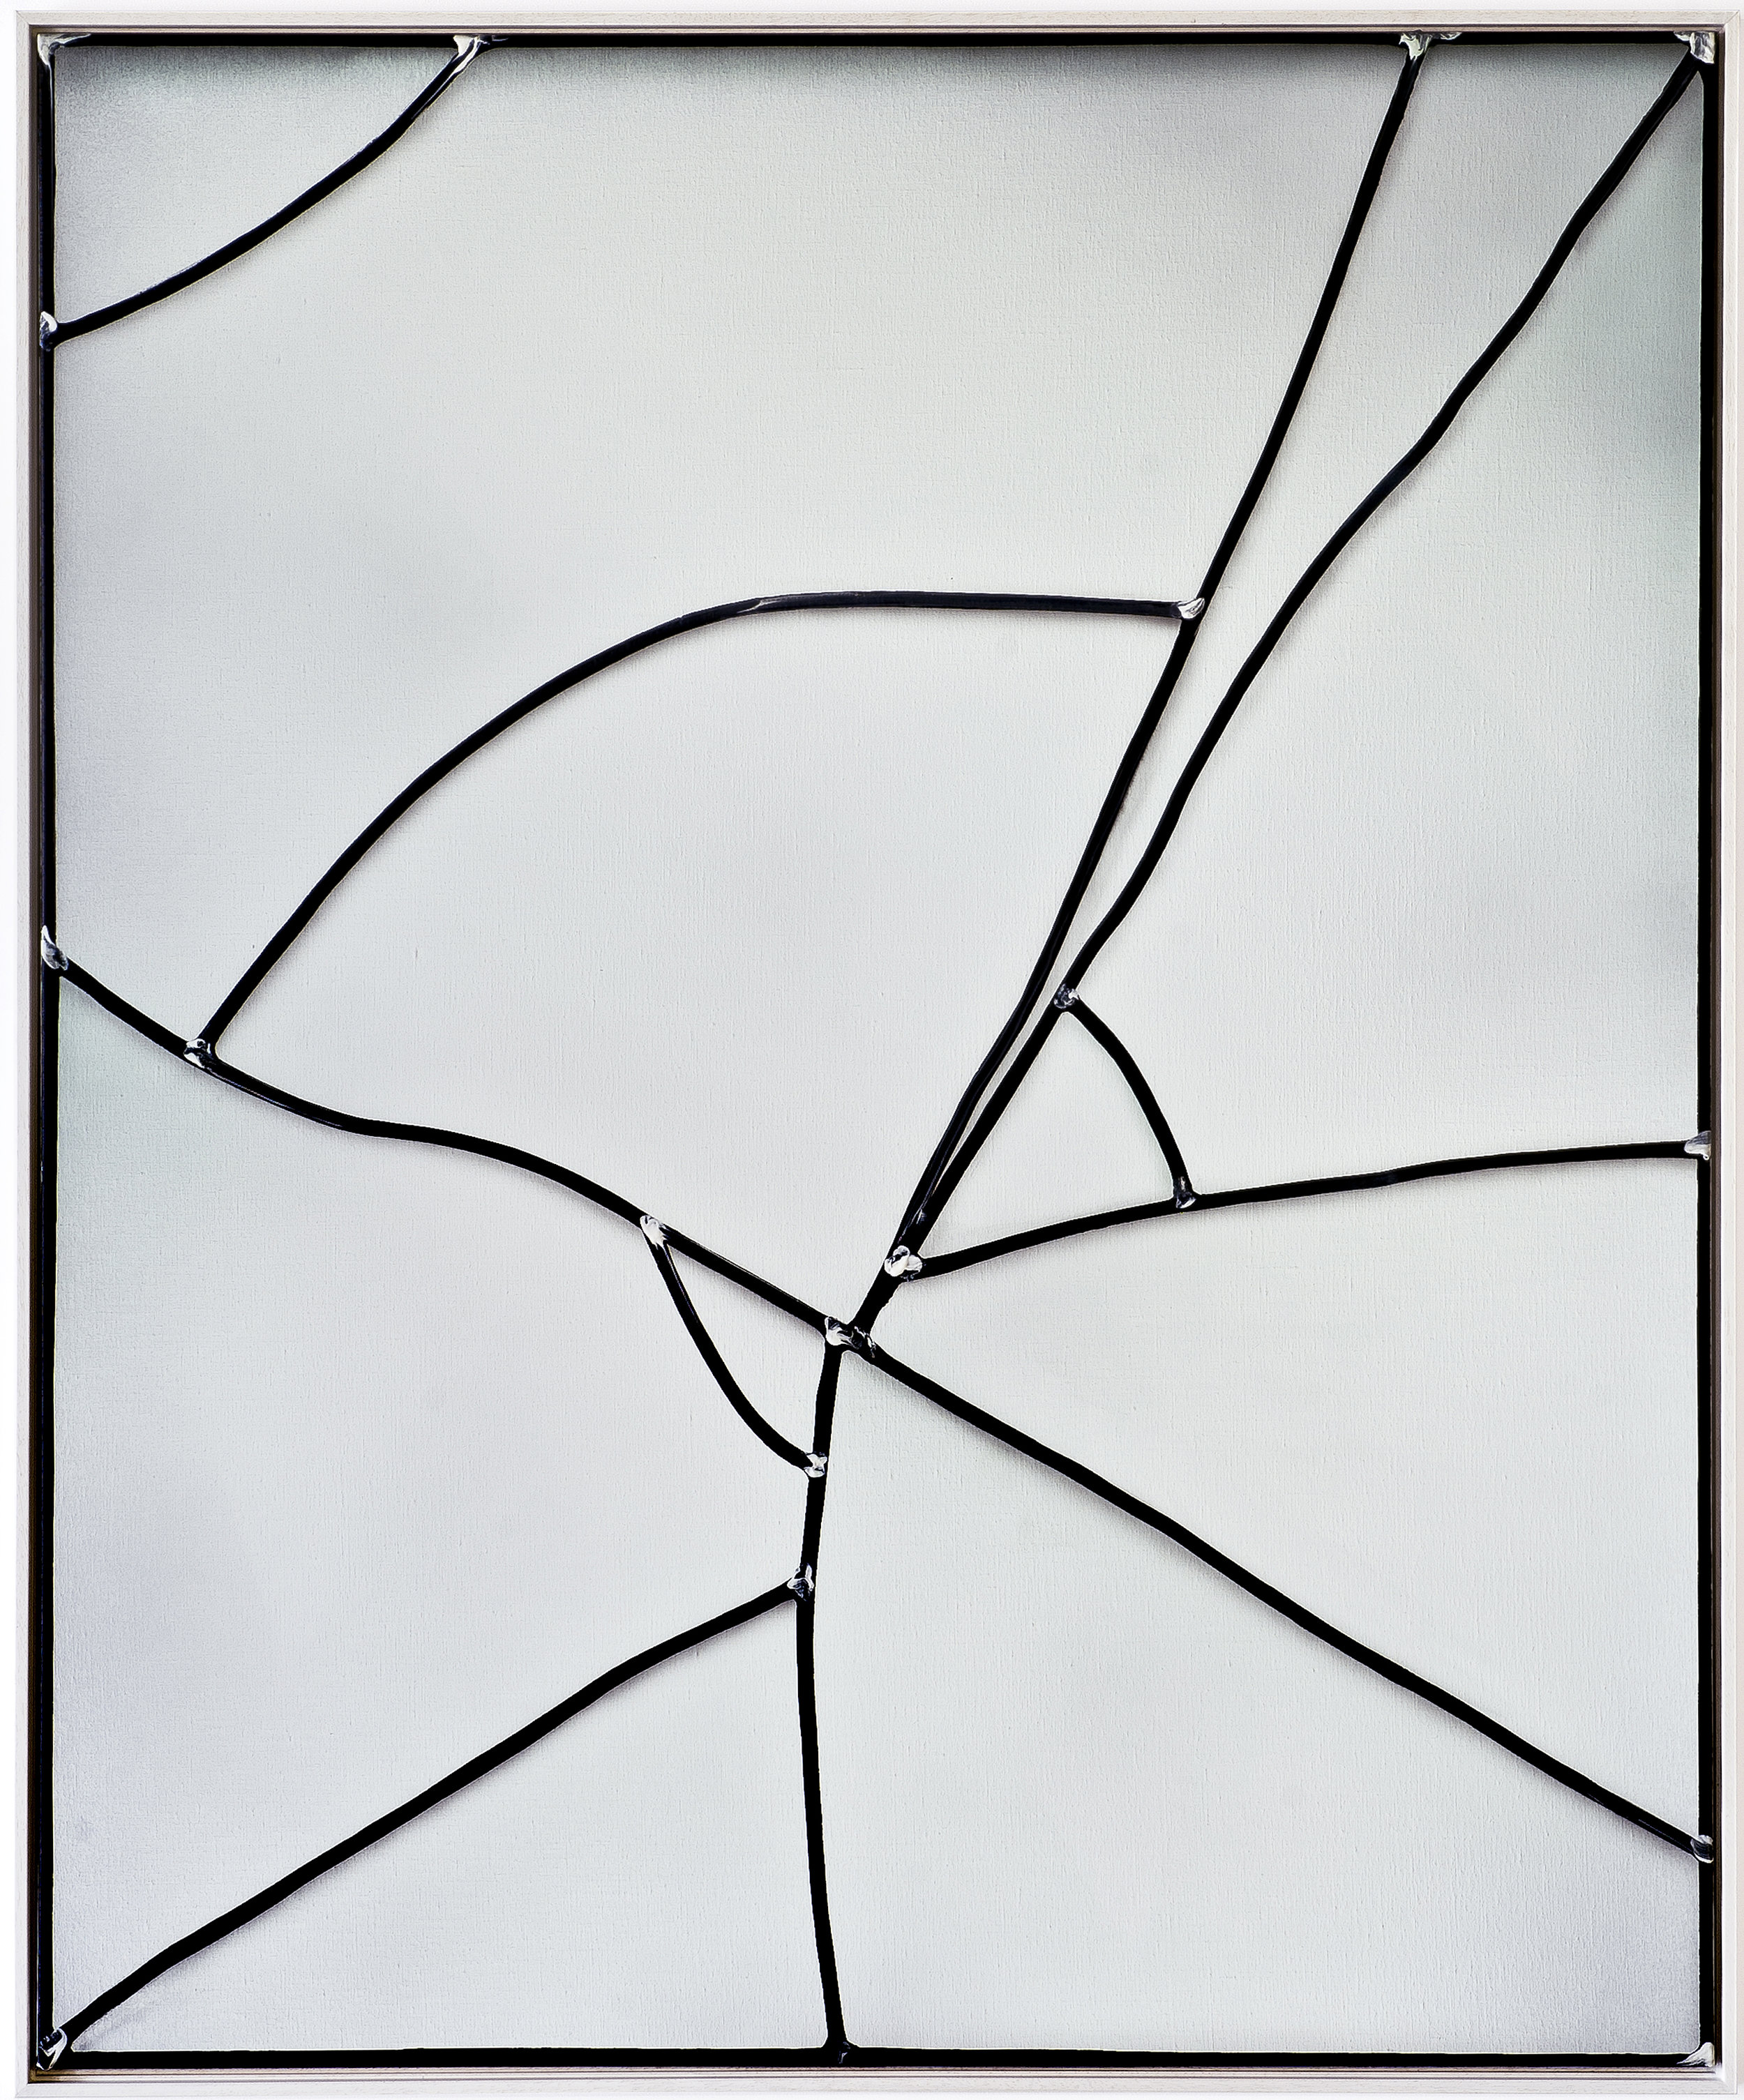 Stained | 2014 acrylic on linen 40 x 115 cm